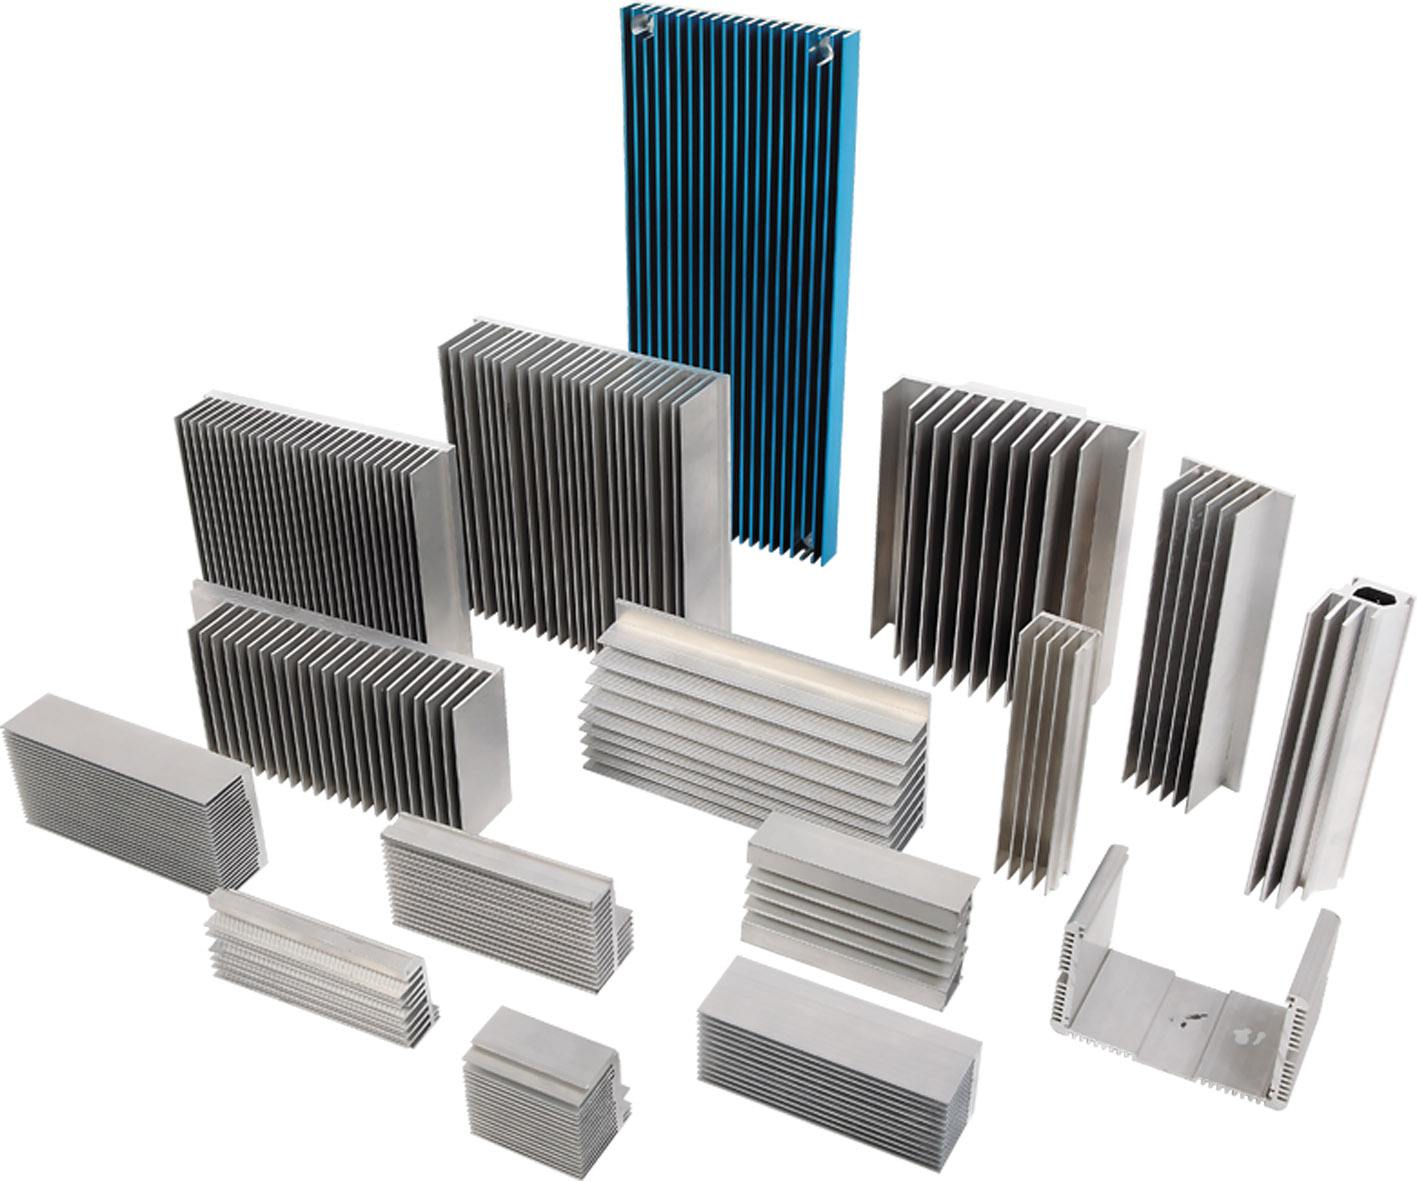 Aluminum alloy profiles for industry and house